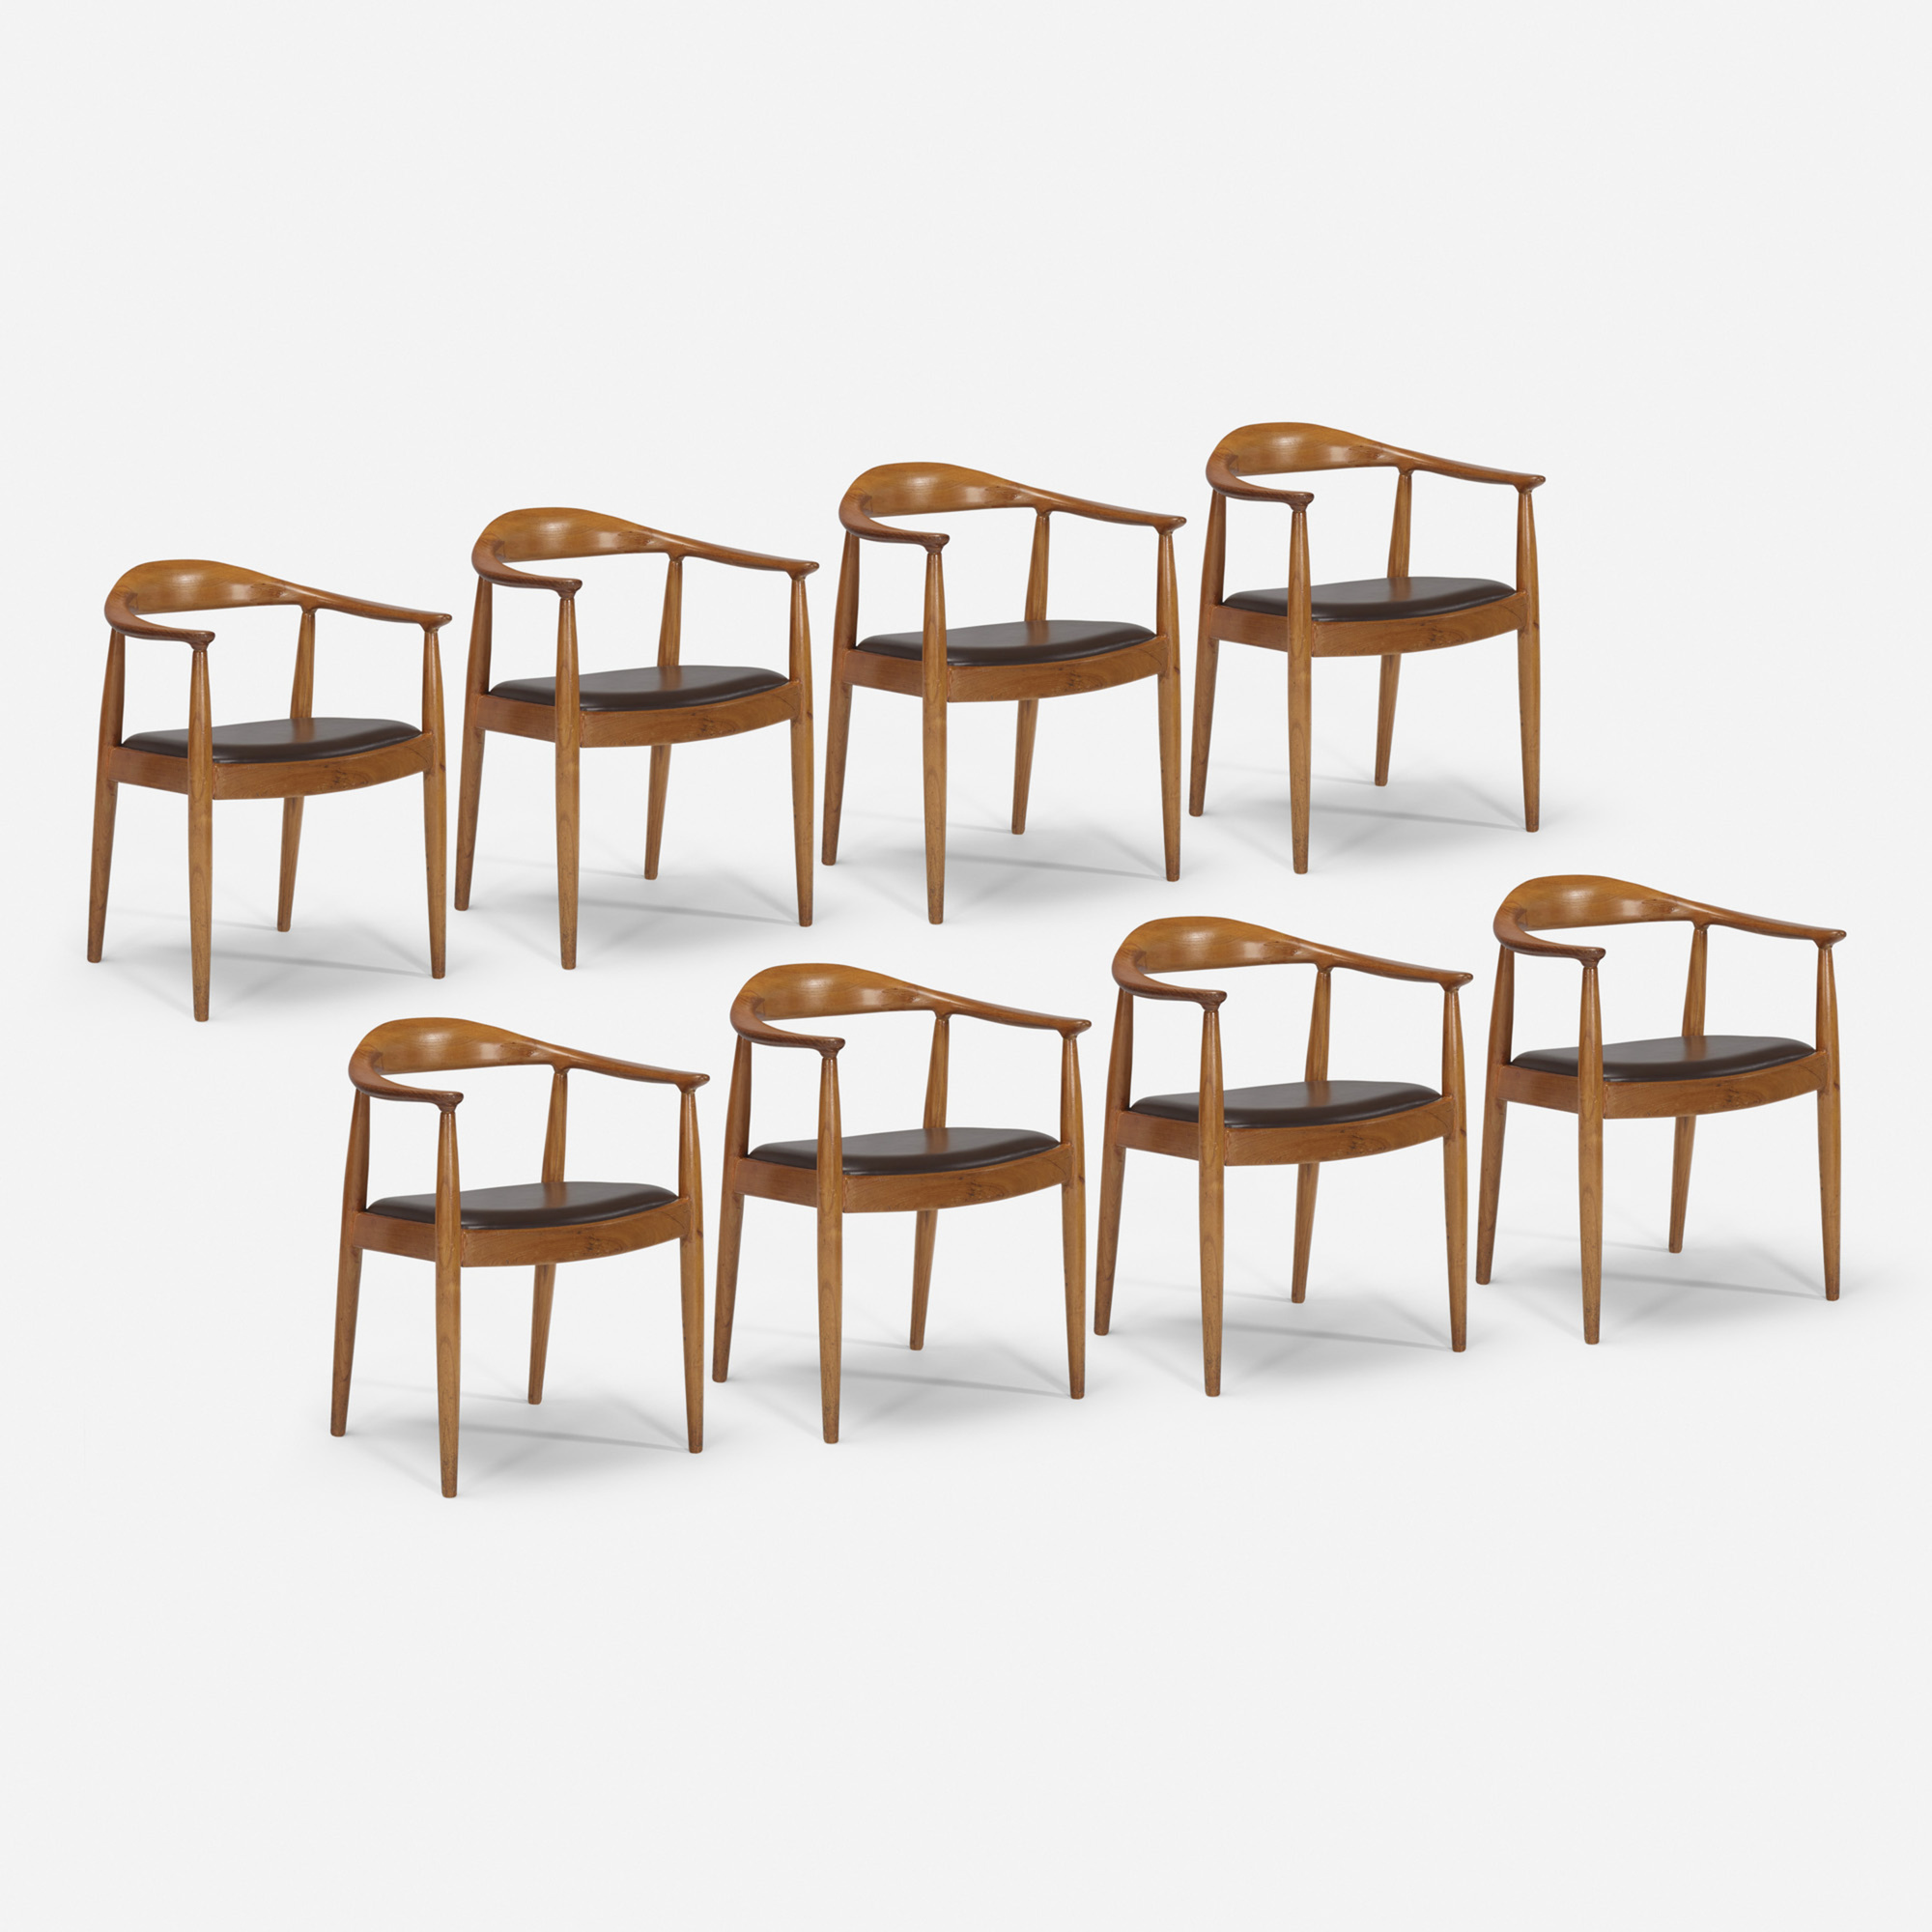 401: Hans J. Wegner / The Chairs from the mezzanine of the Grill Room, set of eight (1 of 1)